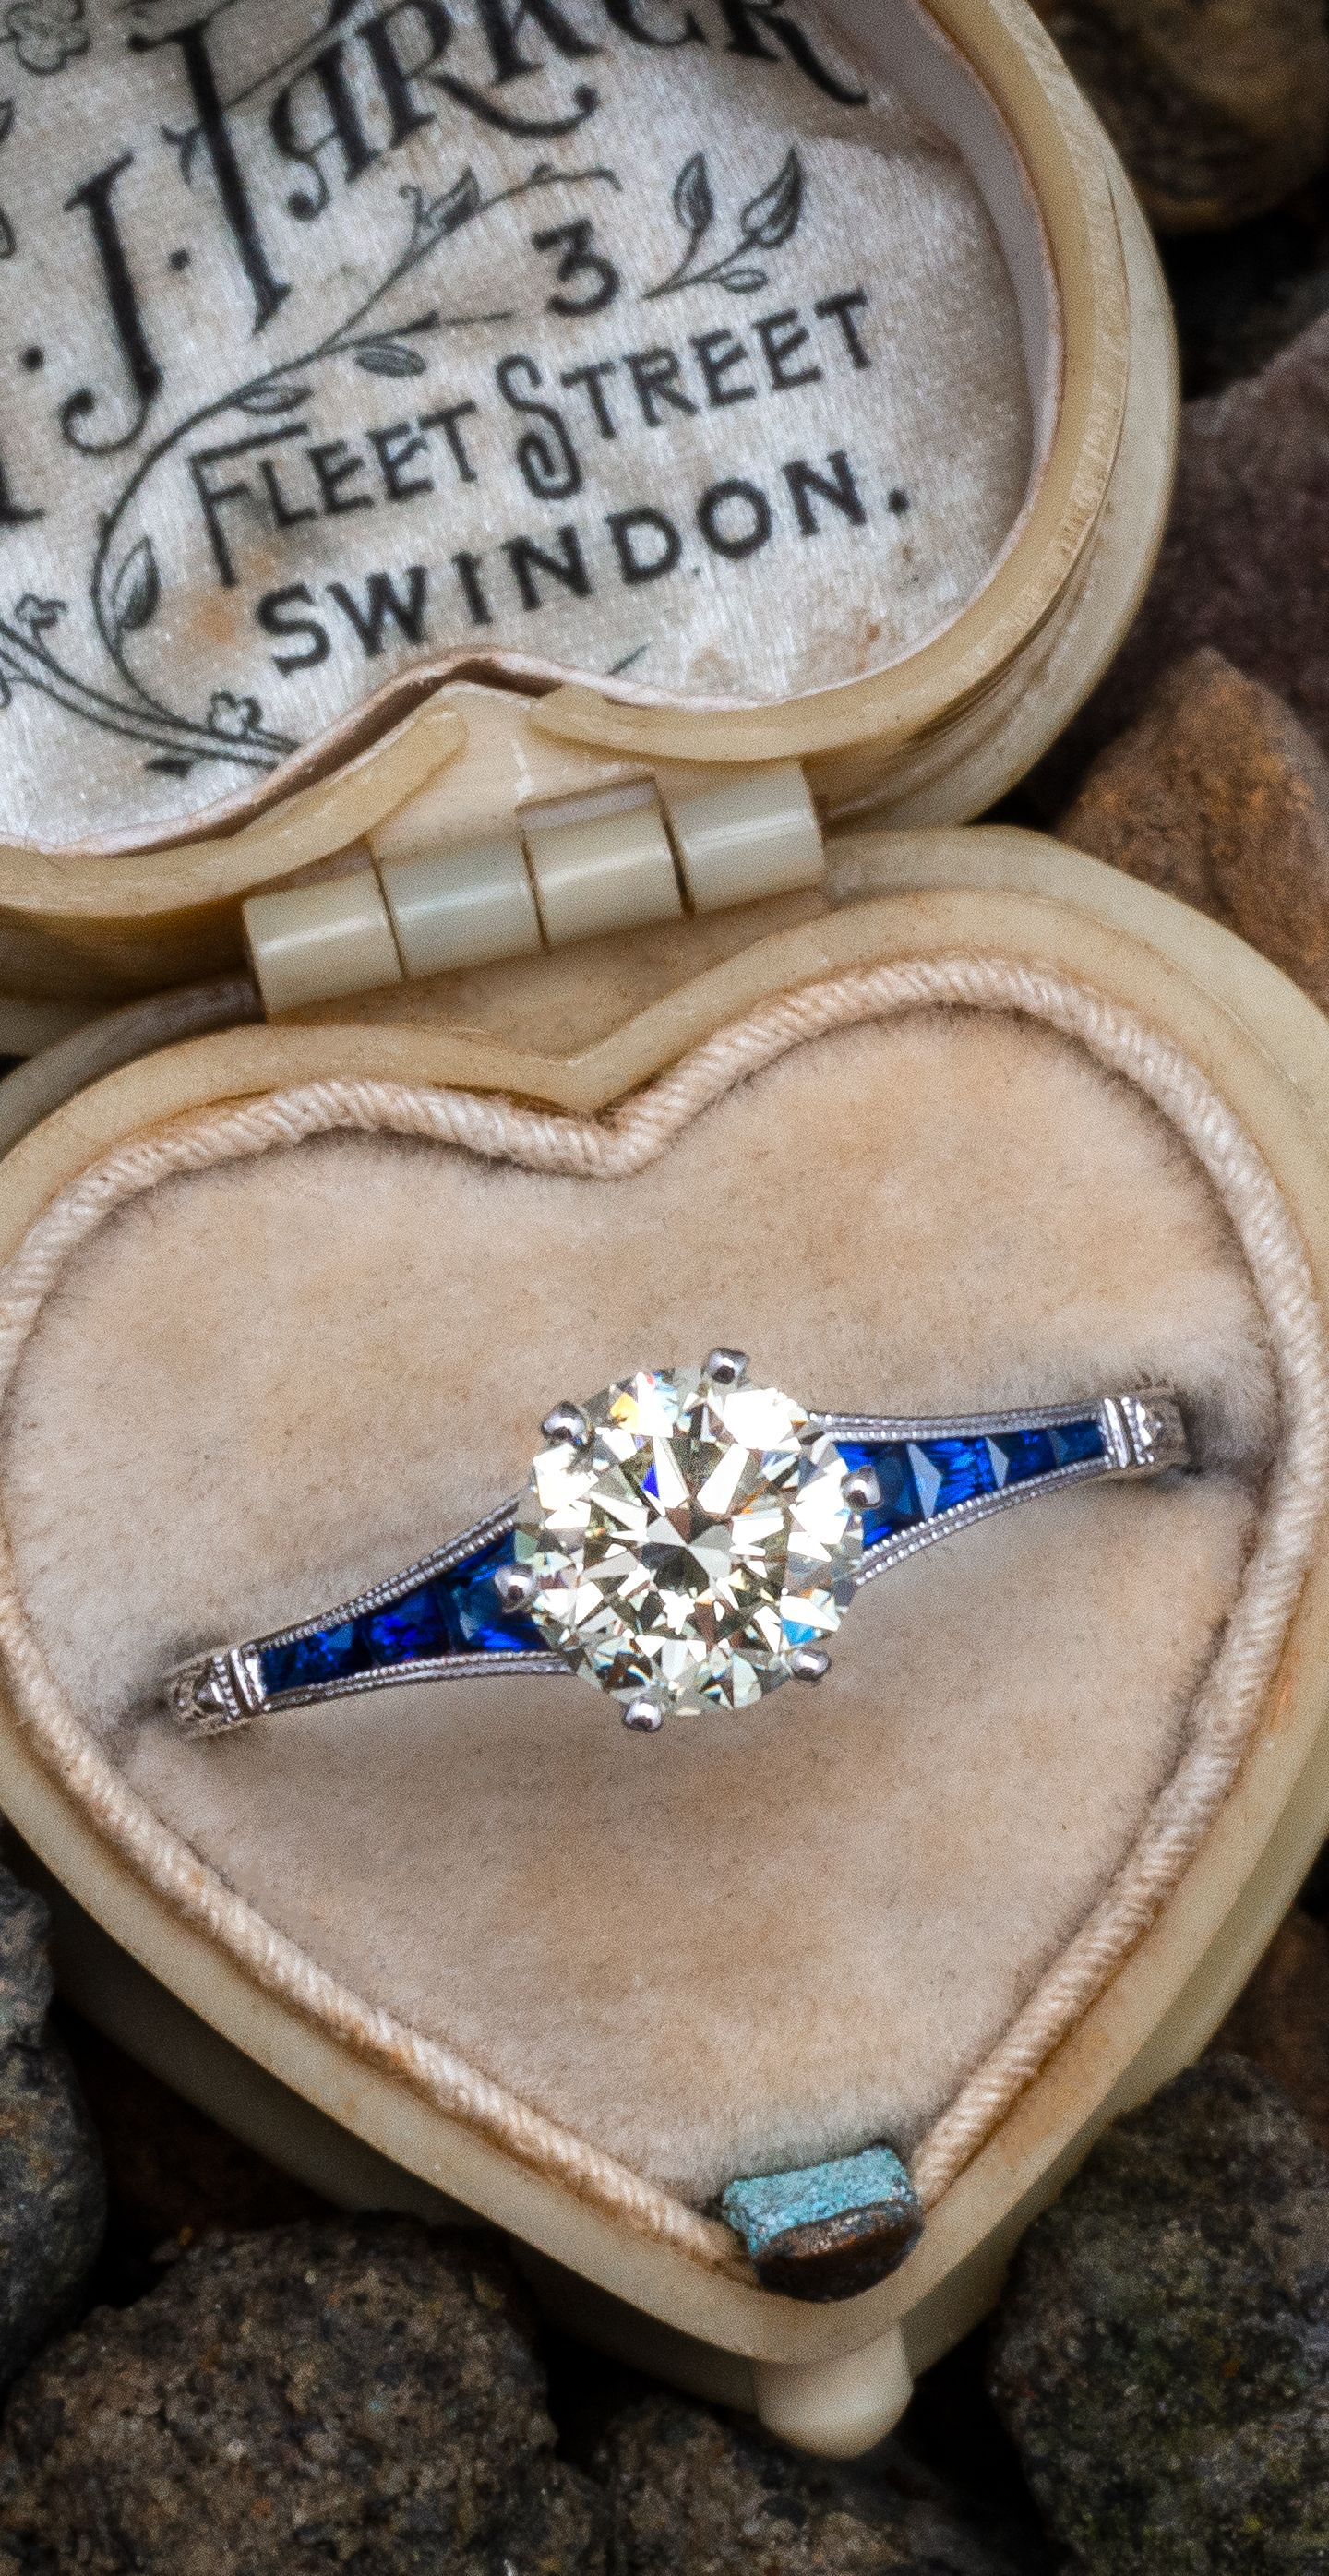 ebaec05cf Diamond & Sapphire Engagement Ring. Diamond & Sapphire Engagement Ring  Vintage Jewellery ...